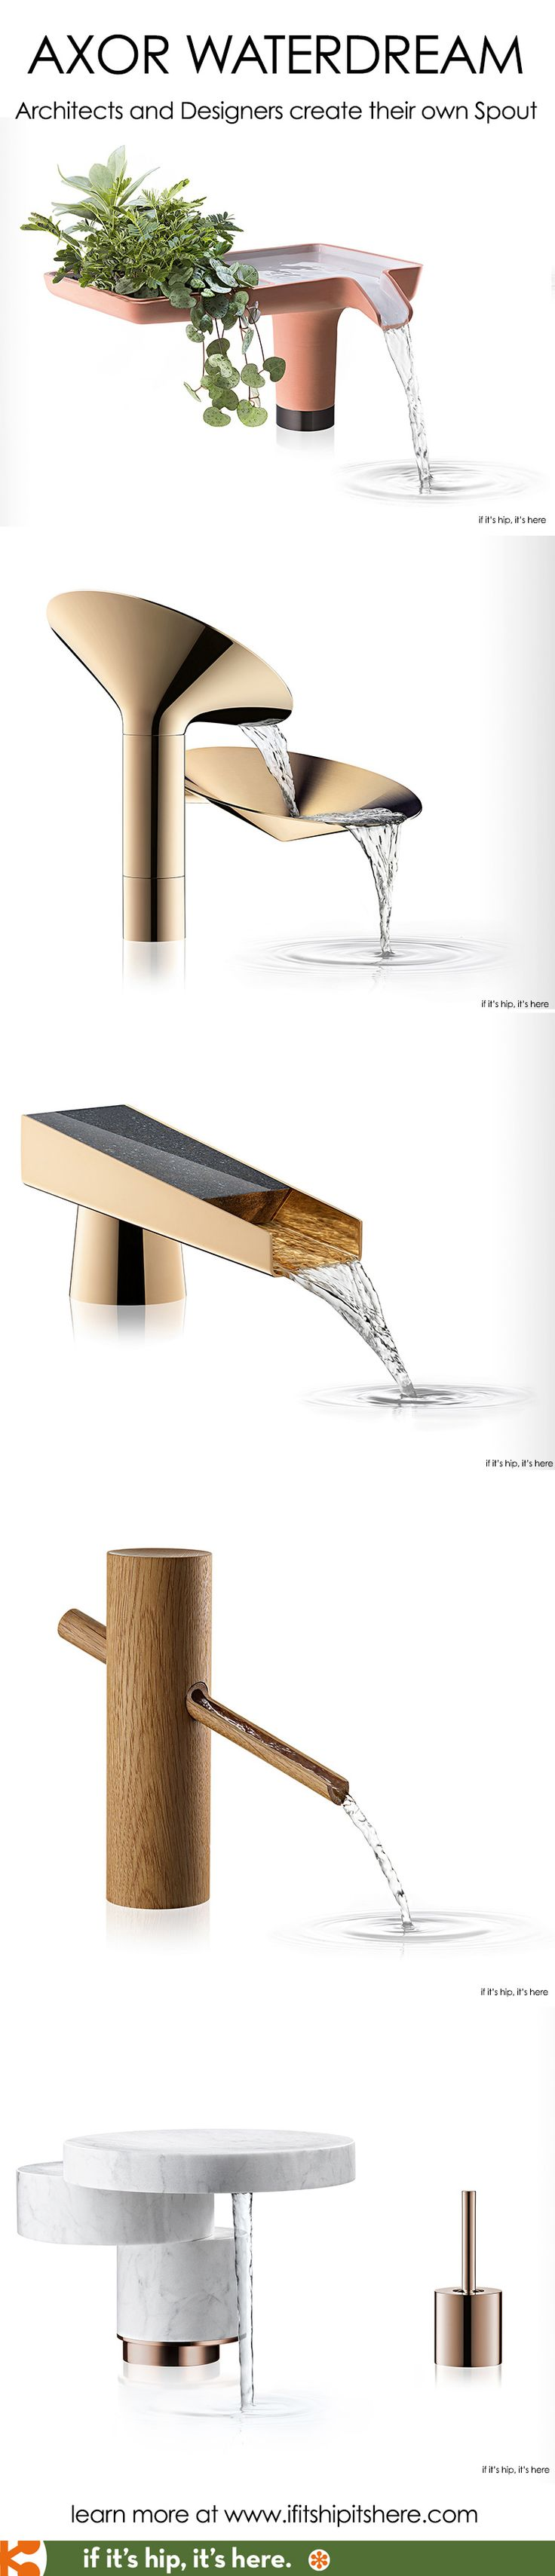 Axor enlisted architects and designers to create their own water taps for WaterDream 2016.